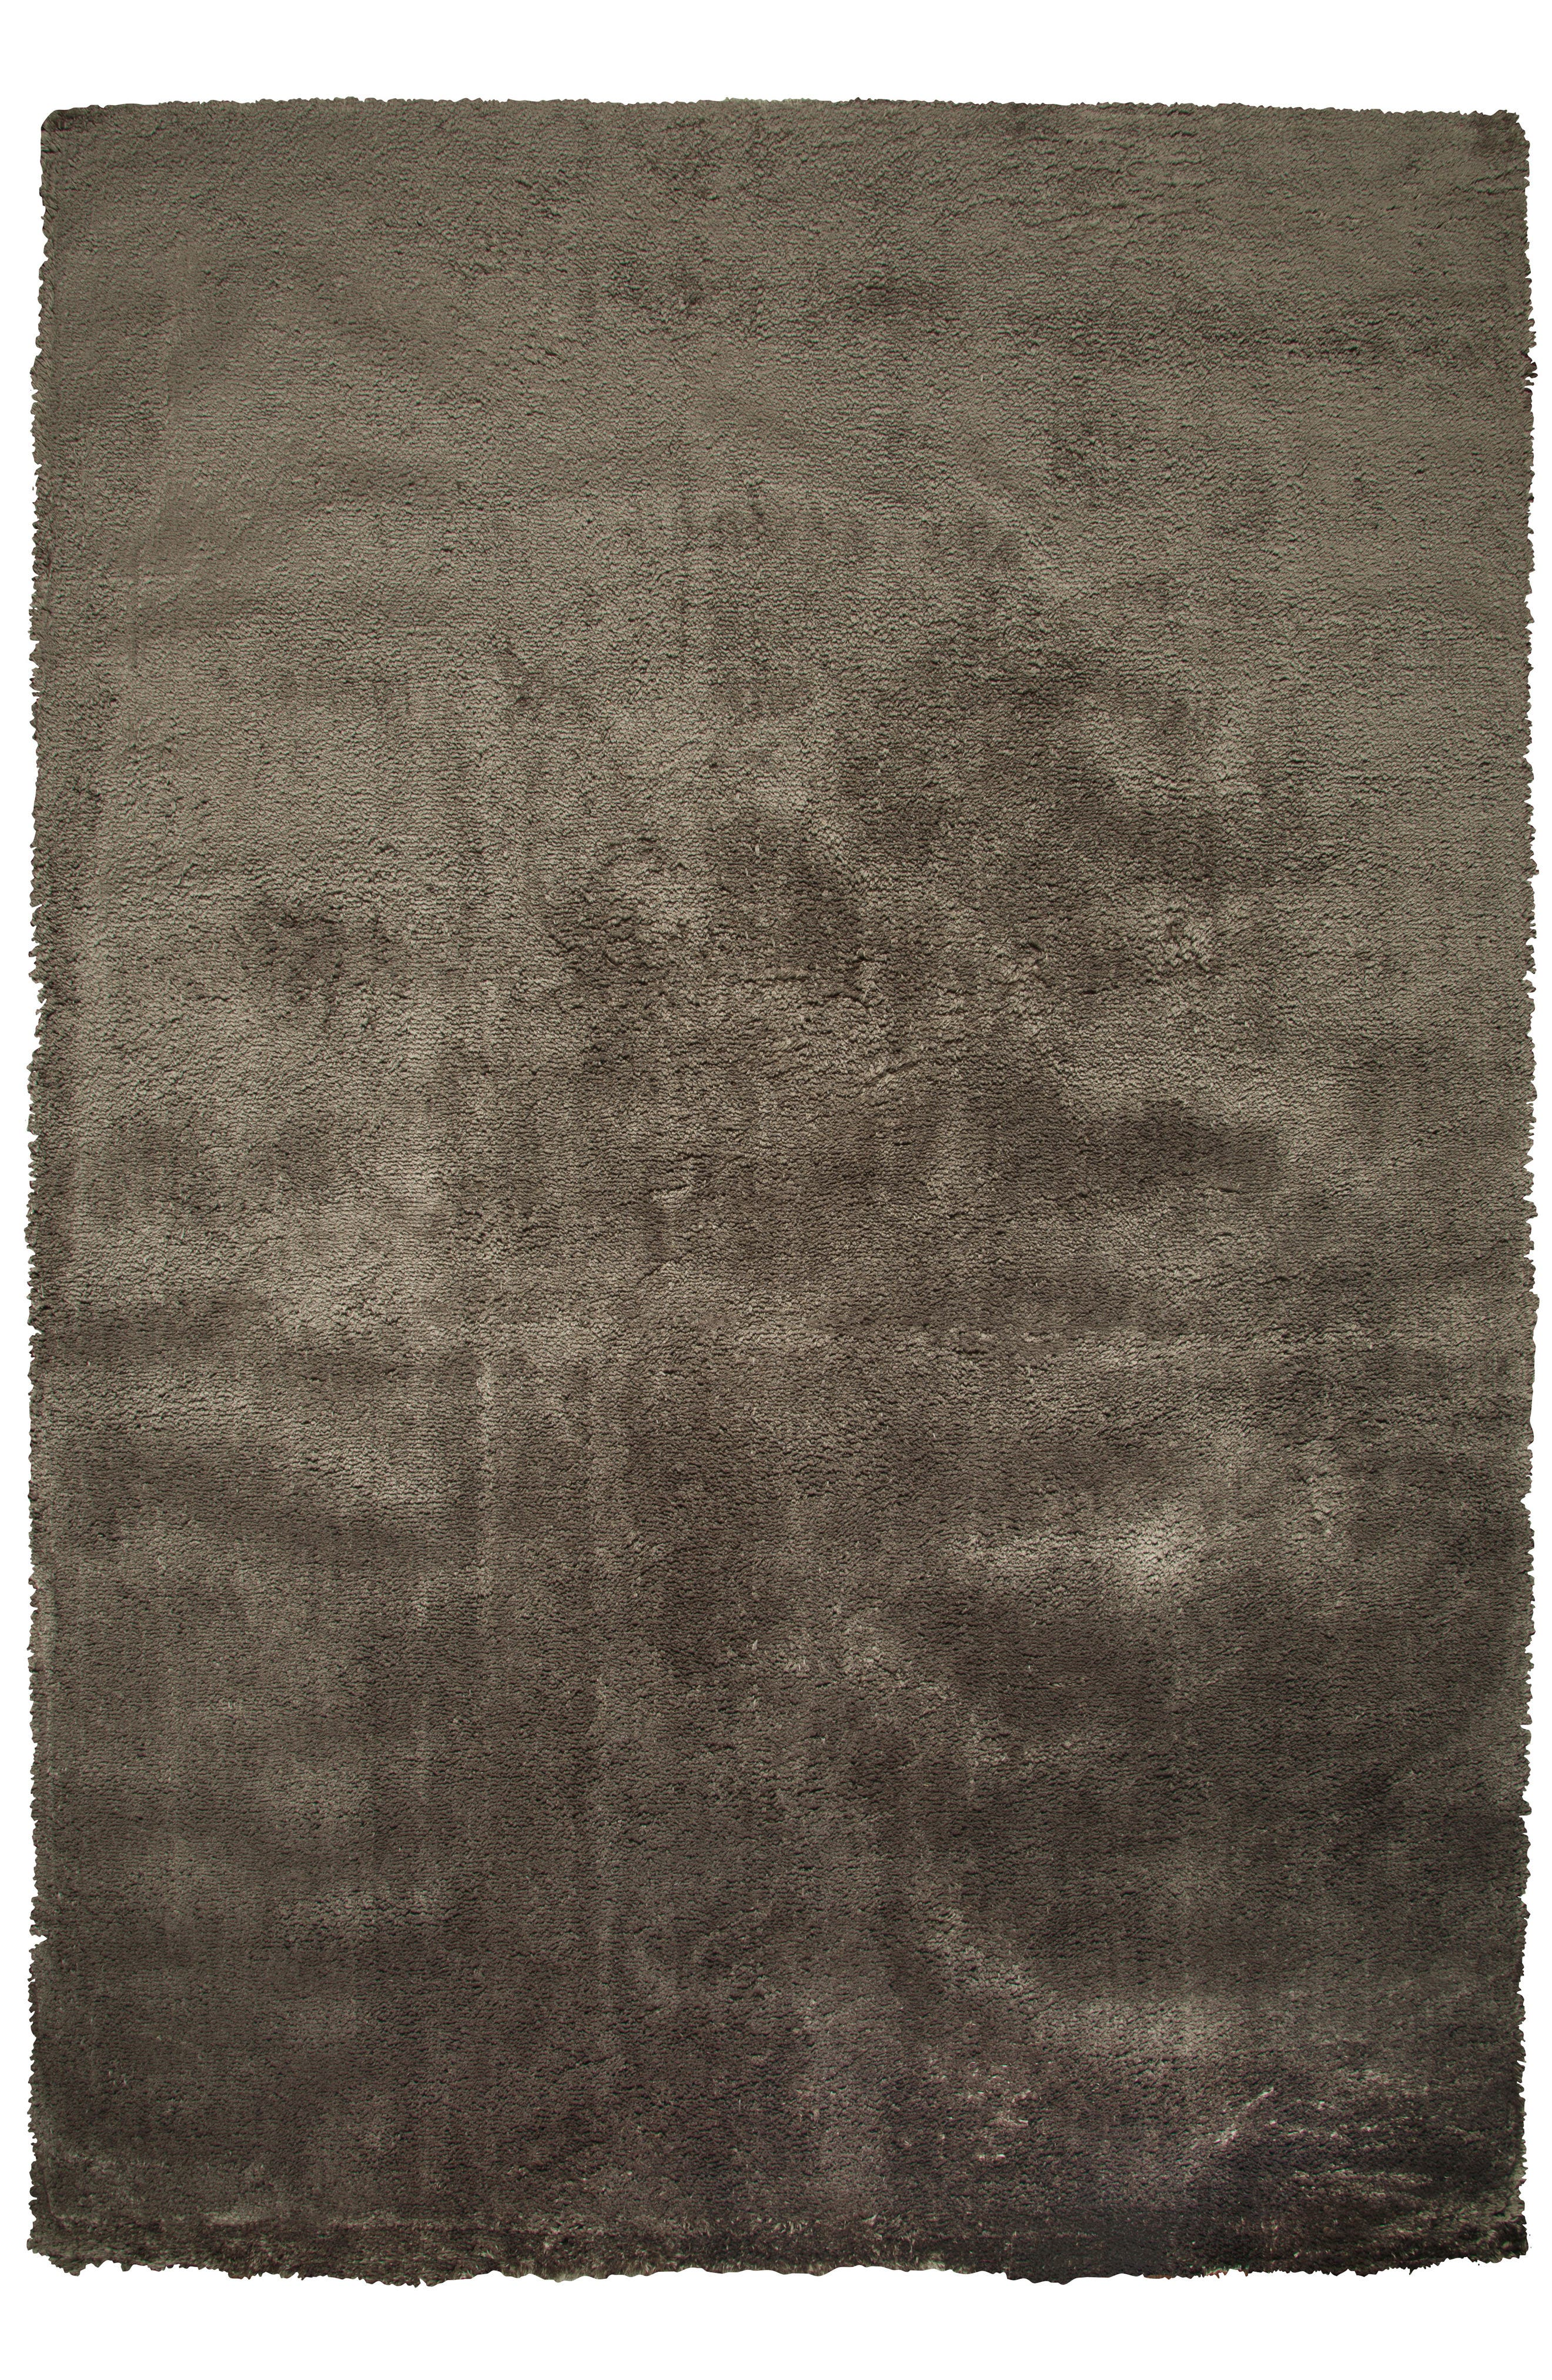 Calgary Plush Shag Area Rug,                             Main thumbnail 1, color,                             Brown